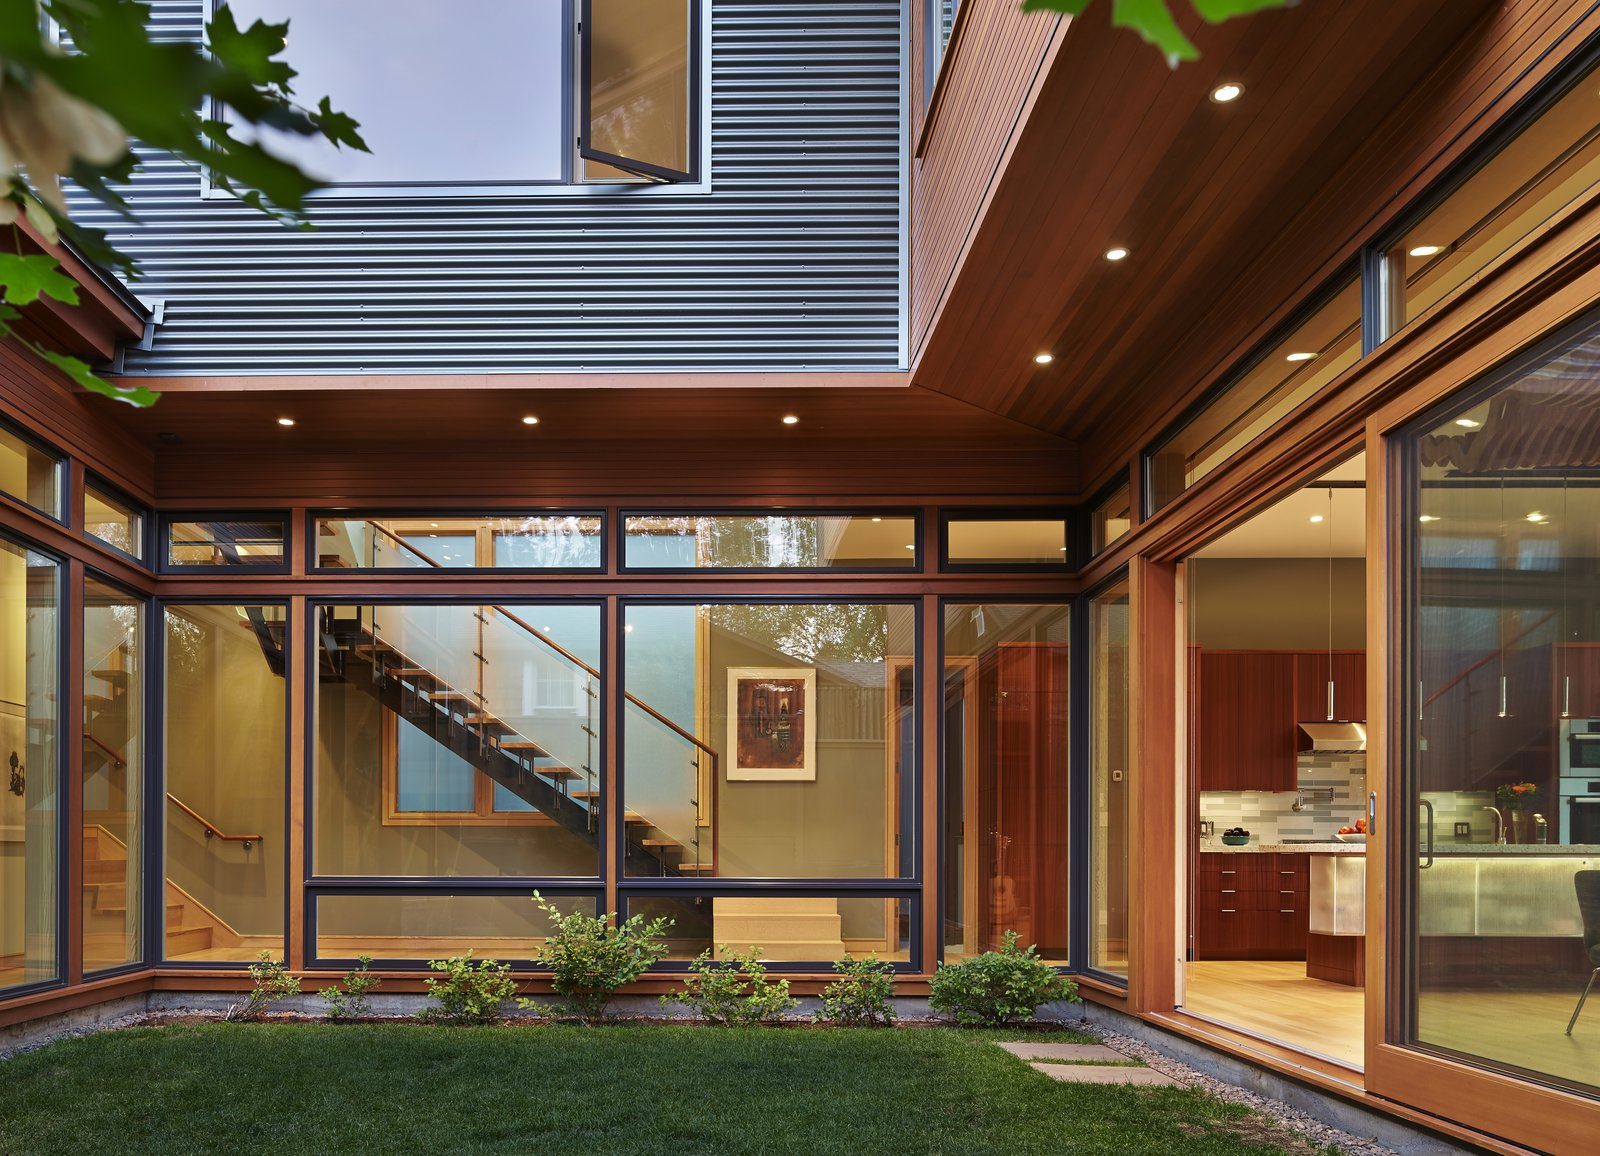 Exterior, Metal, Wood, Metal, Flat, and House View of courtyard  Best Exterior Metal Wood House Flat Photos from DESCHUTES House